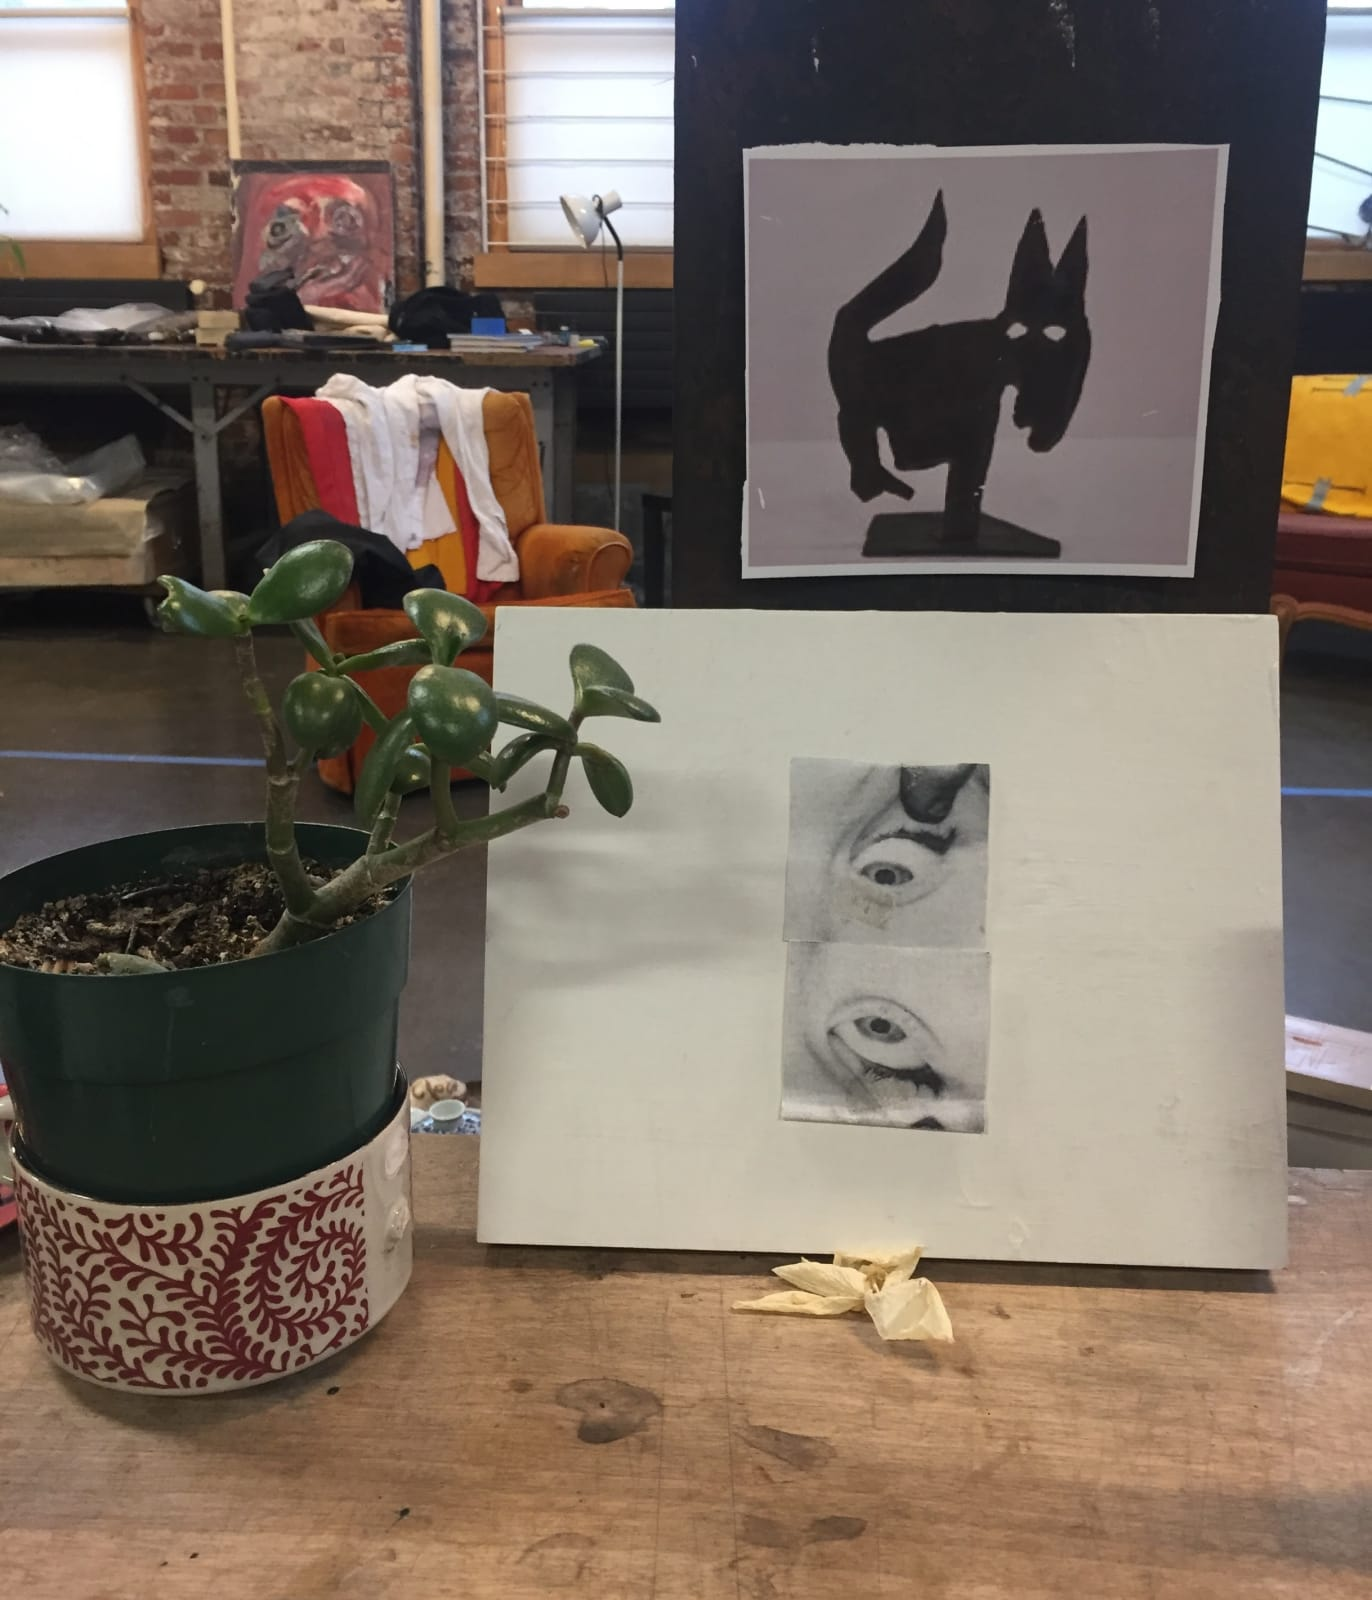 A succulent plant and works on paper adorn Mathieu's desk in his studio in Montreal, Canada.